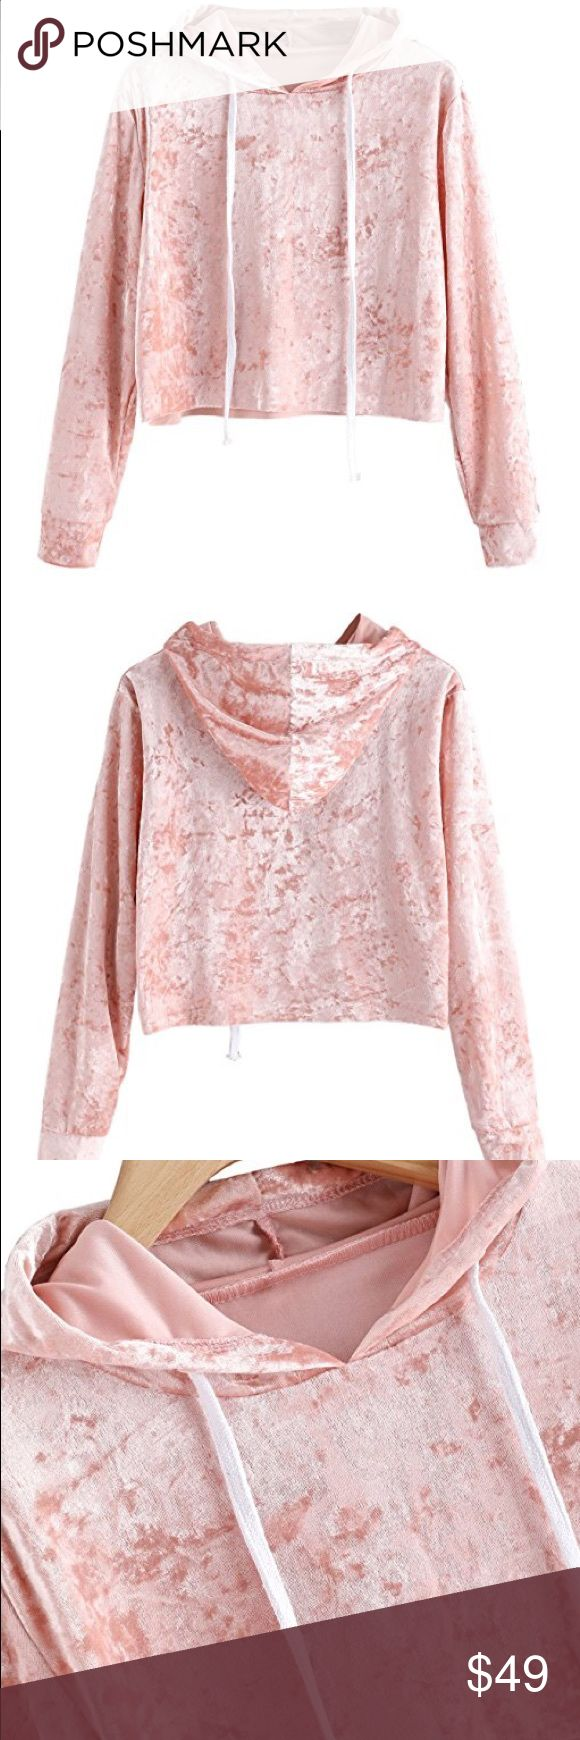 Pink velvet sweatshirt Brand new with tags, boutique pastel blush pink velvet cropped sweatshirt. Available size are: xsmall, small, medium, or large.   POSH RULES ONLY NO PP NO TRADES NO LOWBALL OFFERS  HAPPY POSHING! boutique Tops Sweatshirts & Hoodies